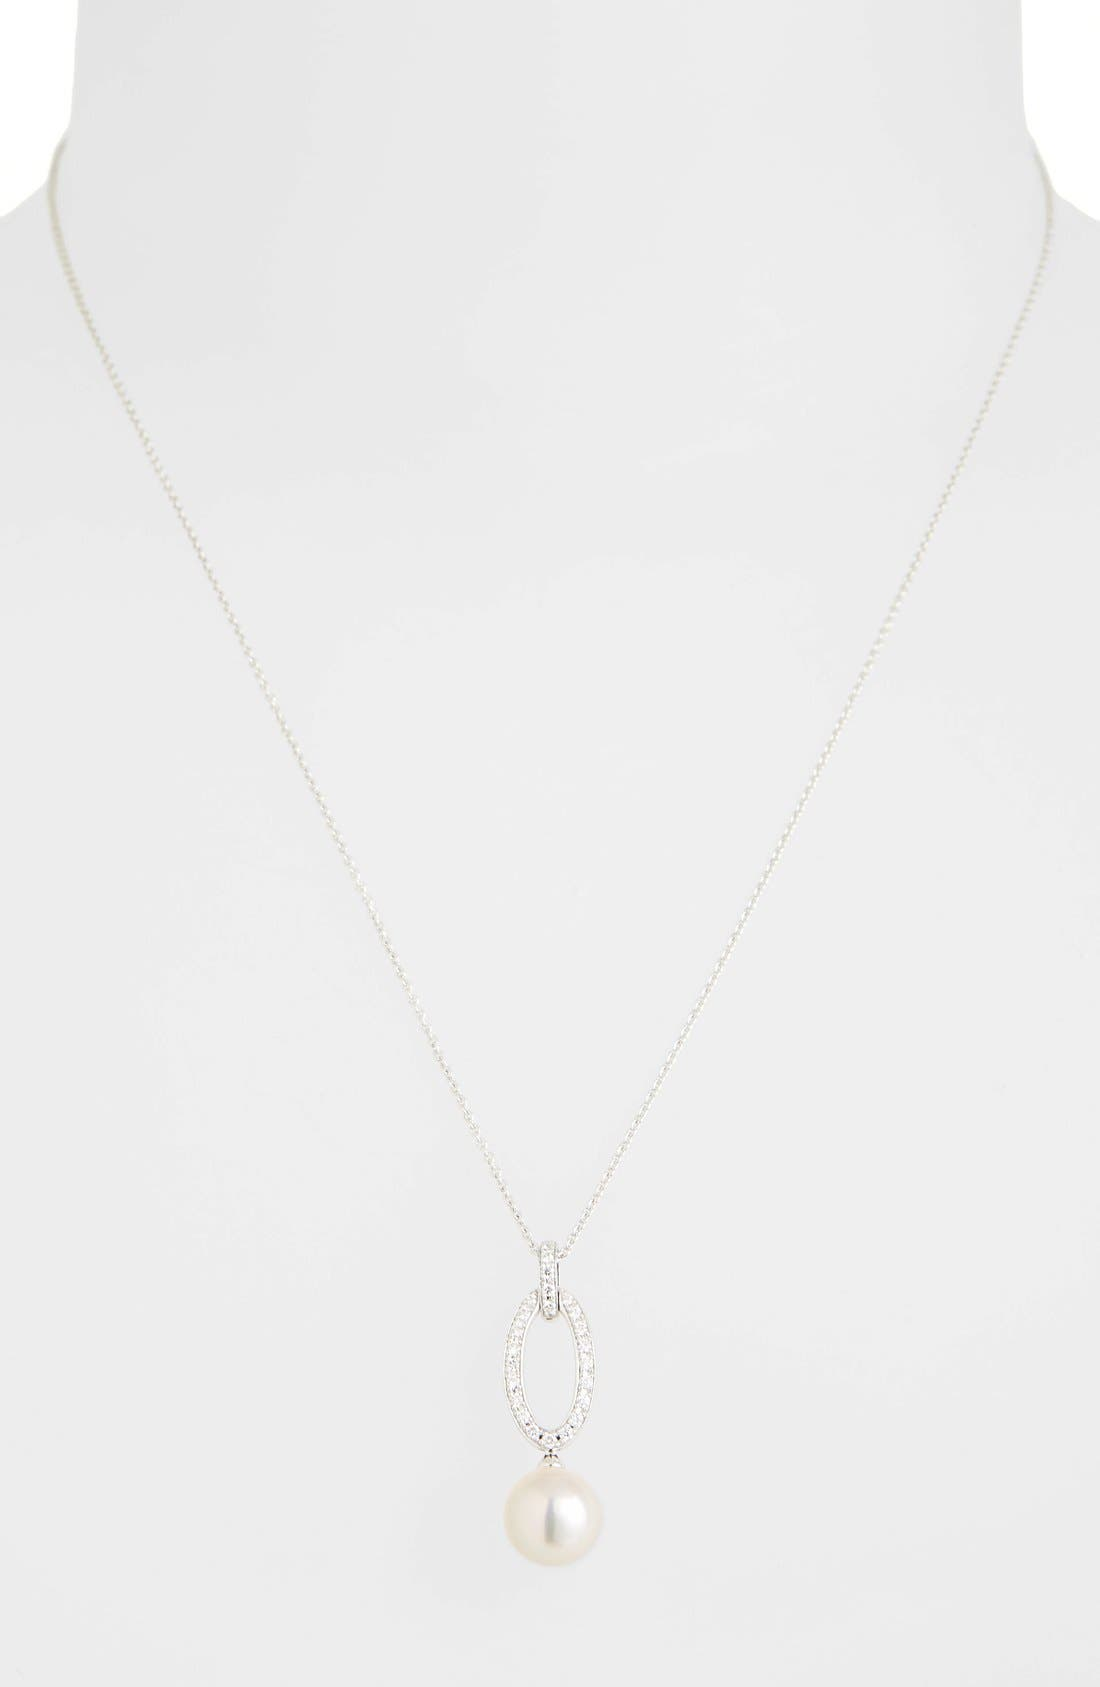 Mikimoto Diamond & Akoya Cultured Pearl Pendant Necklace